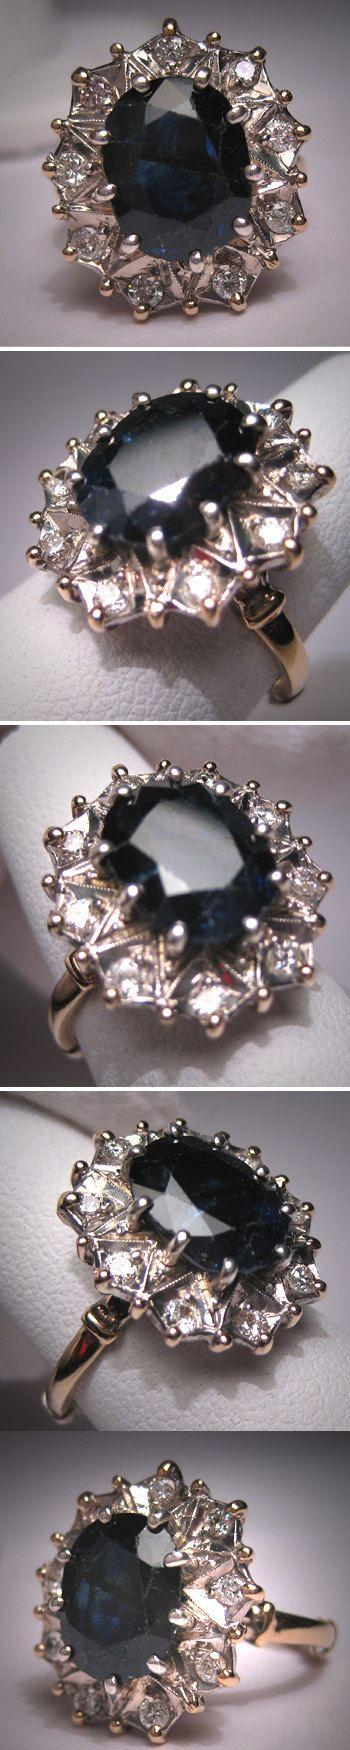 زفاف - Antique Royal Sapphire Diamond Wedding Ring Vintage